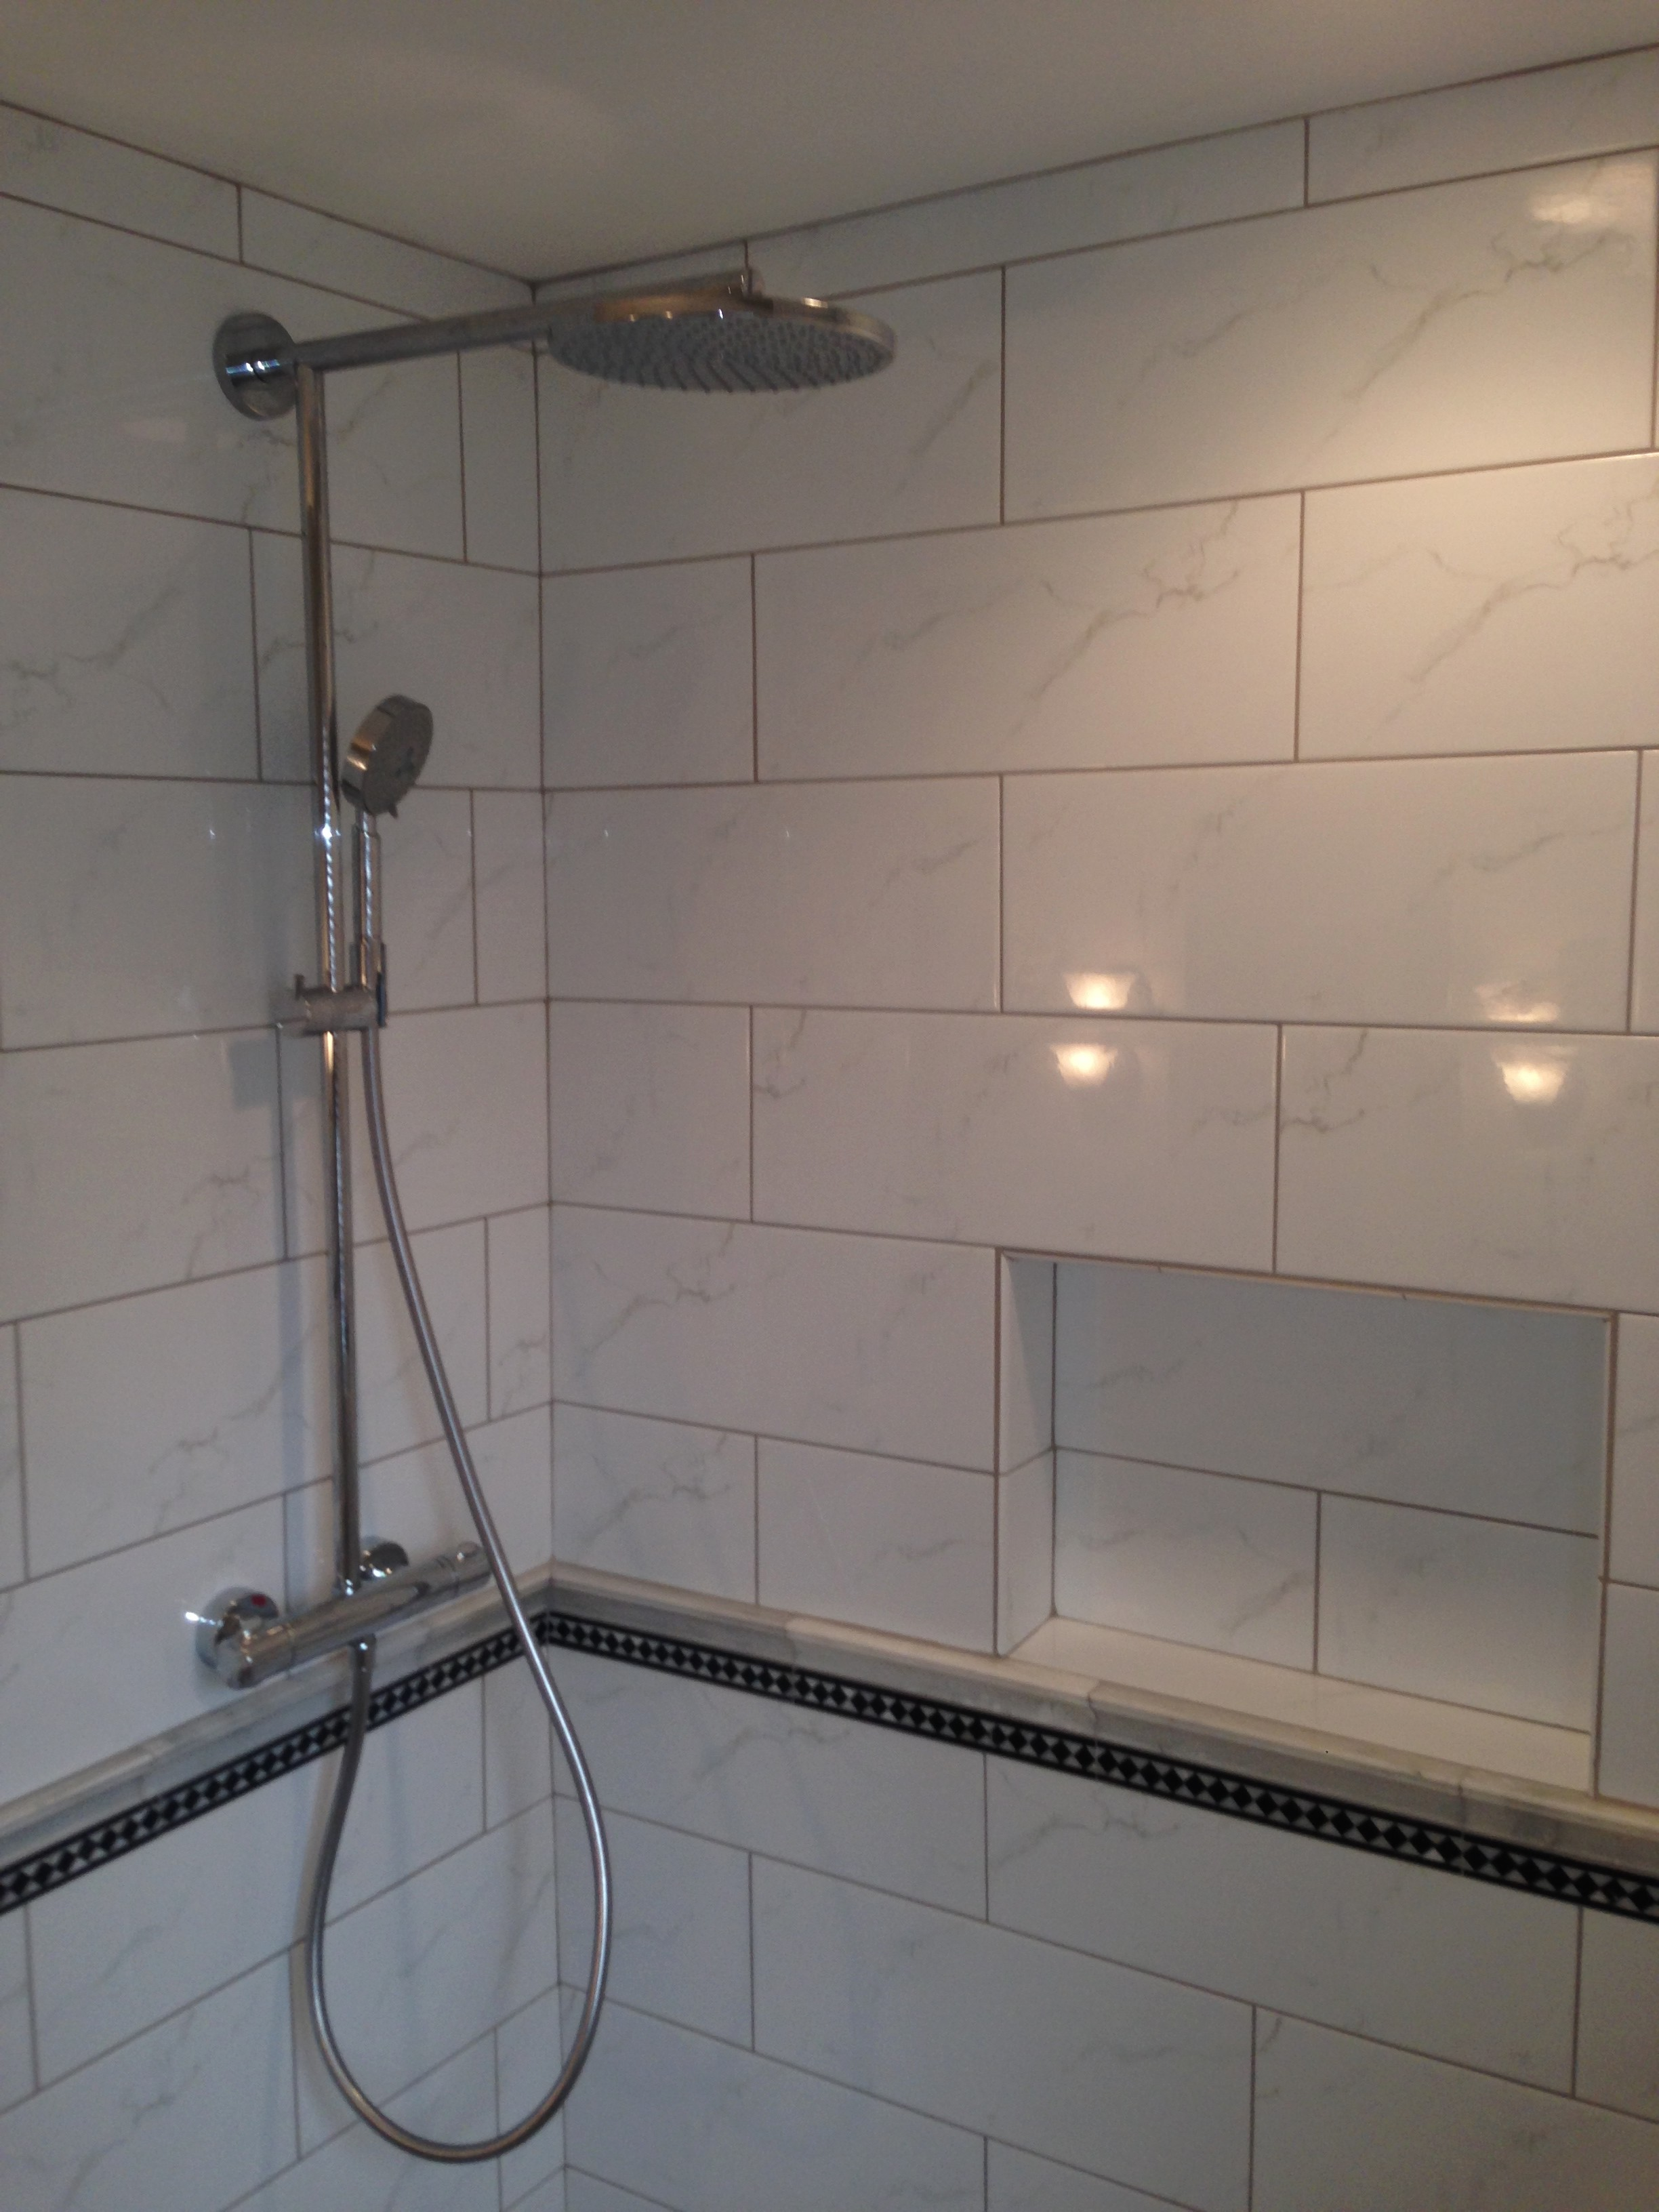 A great shower system made by Hansgrohe. Featuring a rain shower and handheld